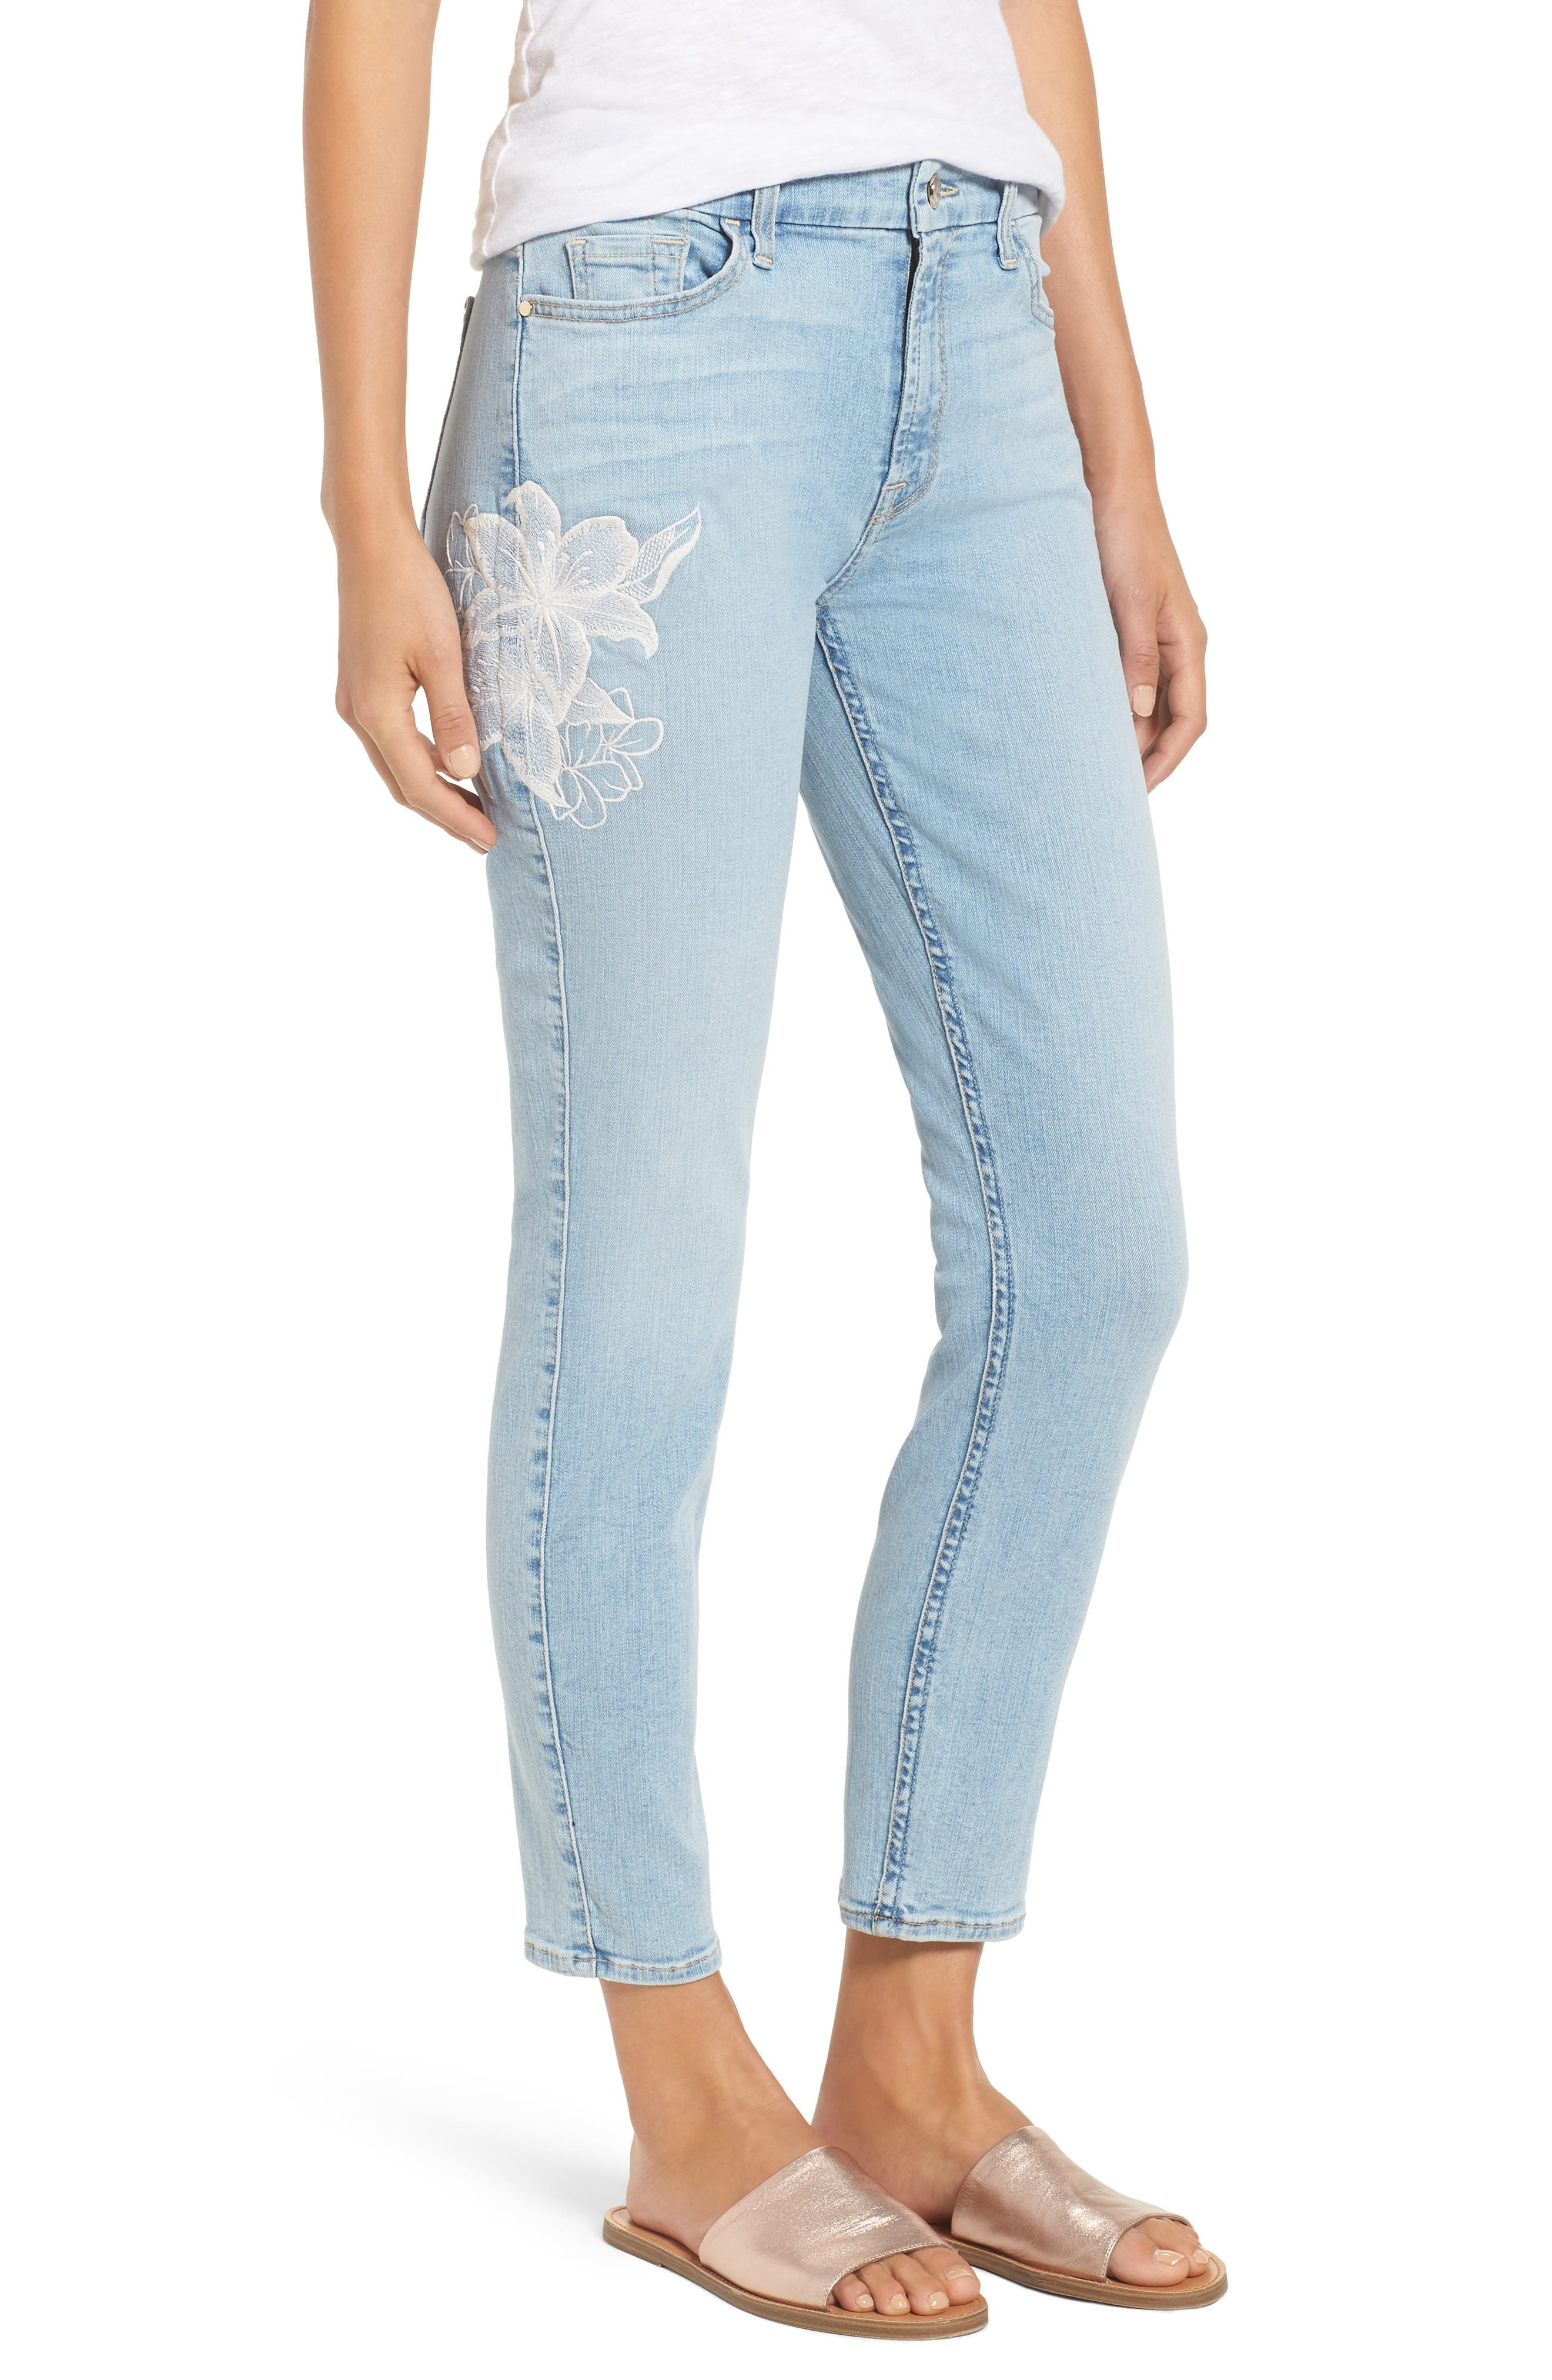 Jen 7 Embroidered Stretch Sklnny Ankle Jeans,                             Main thumbnail 1, color,                             RICHE TOUCH PLAYA VISTA